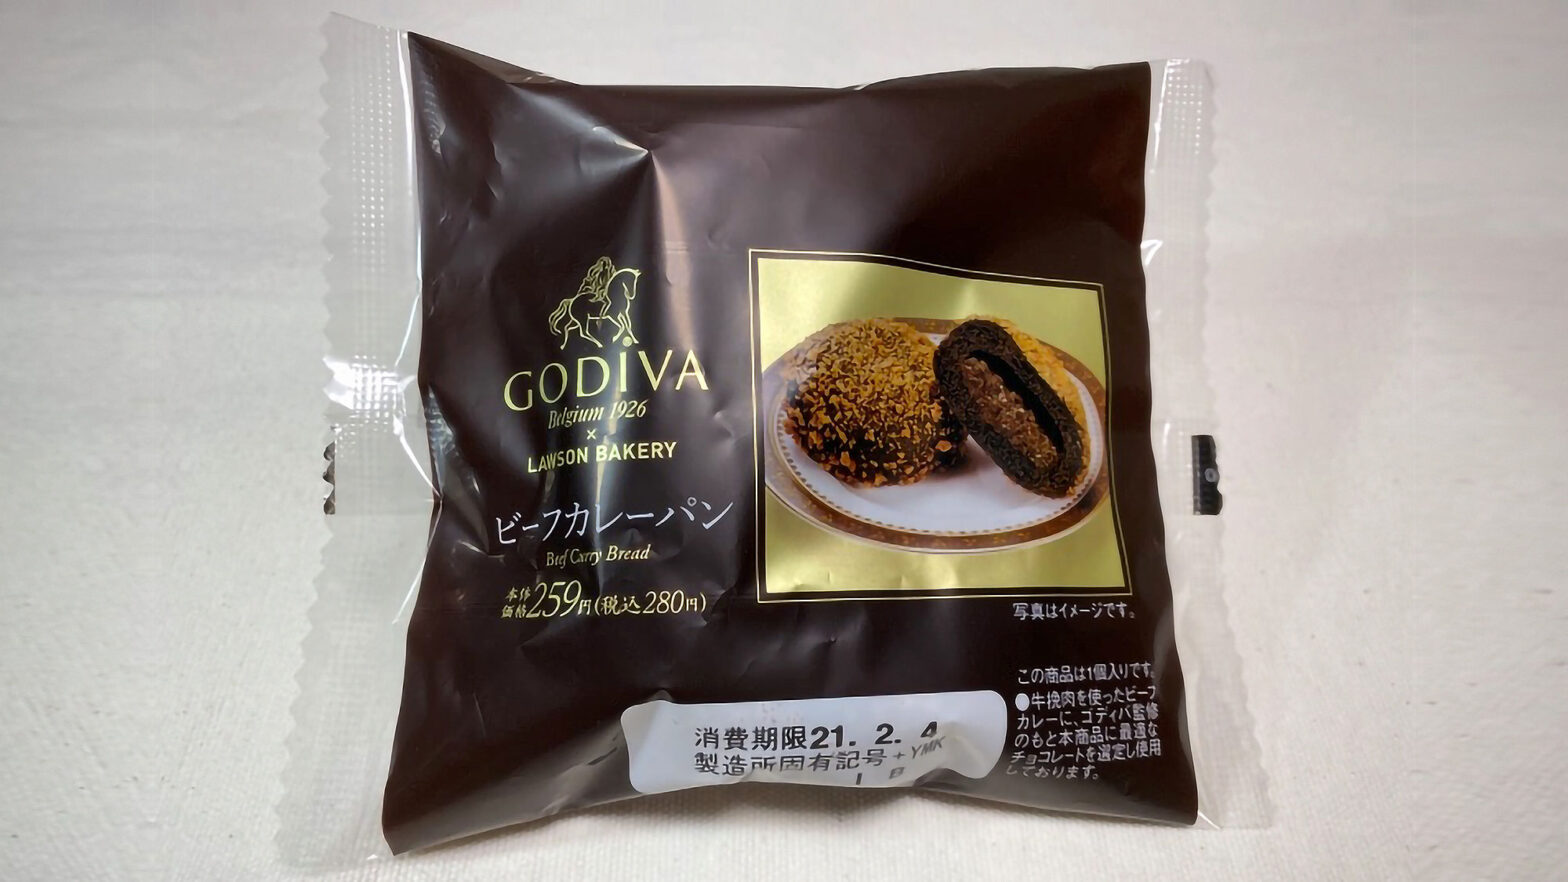 Godiva x Lawson Bakery Beef Curry Bread